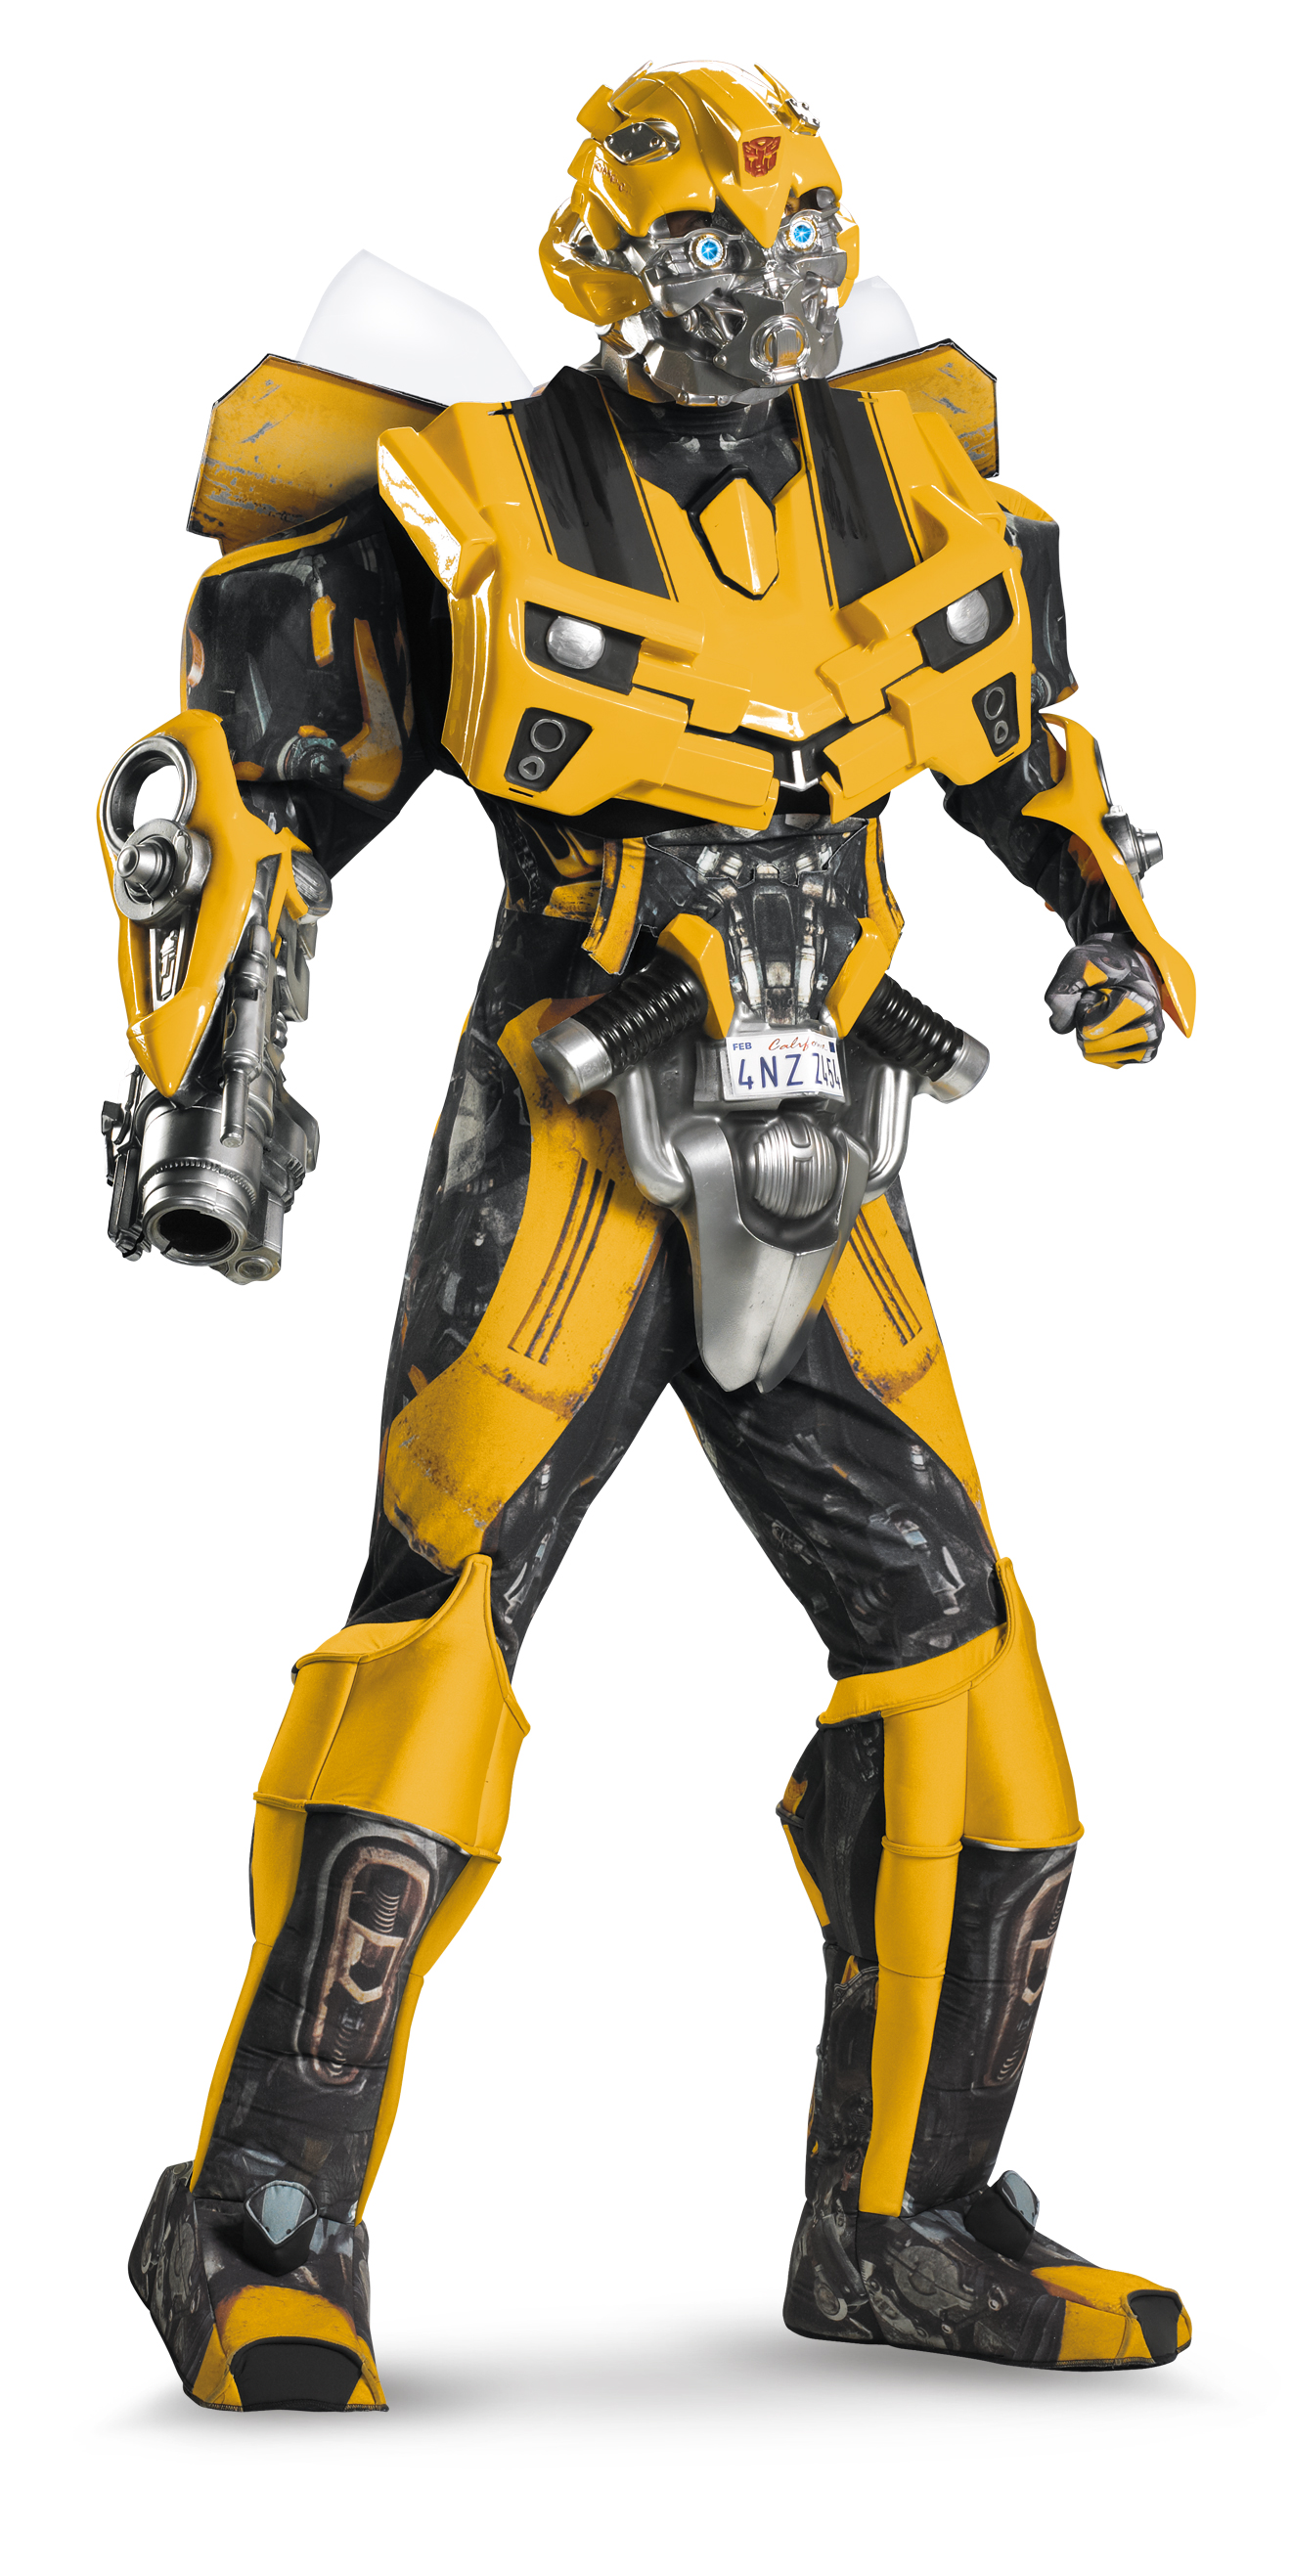 transformers 3 dark of the moon movie bumblebee 3d theatrical w